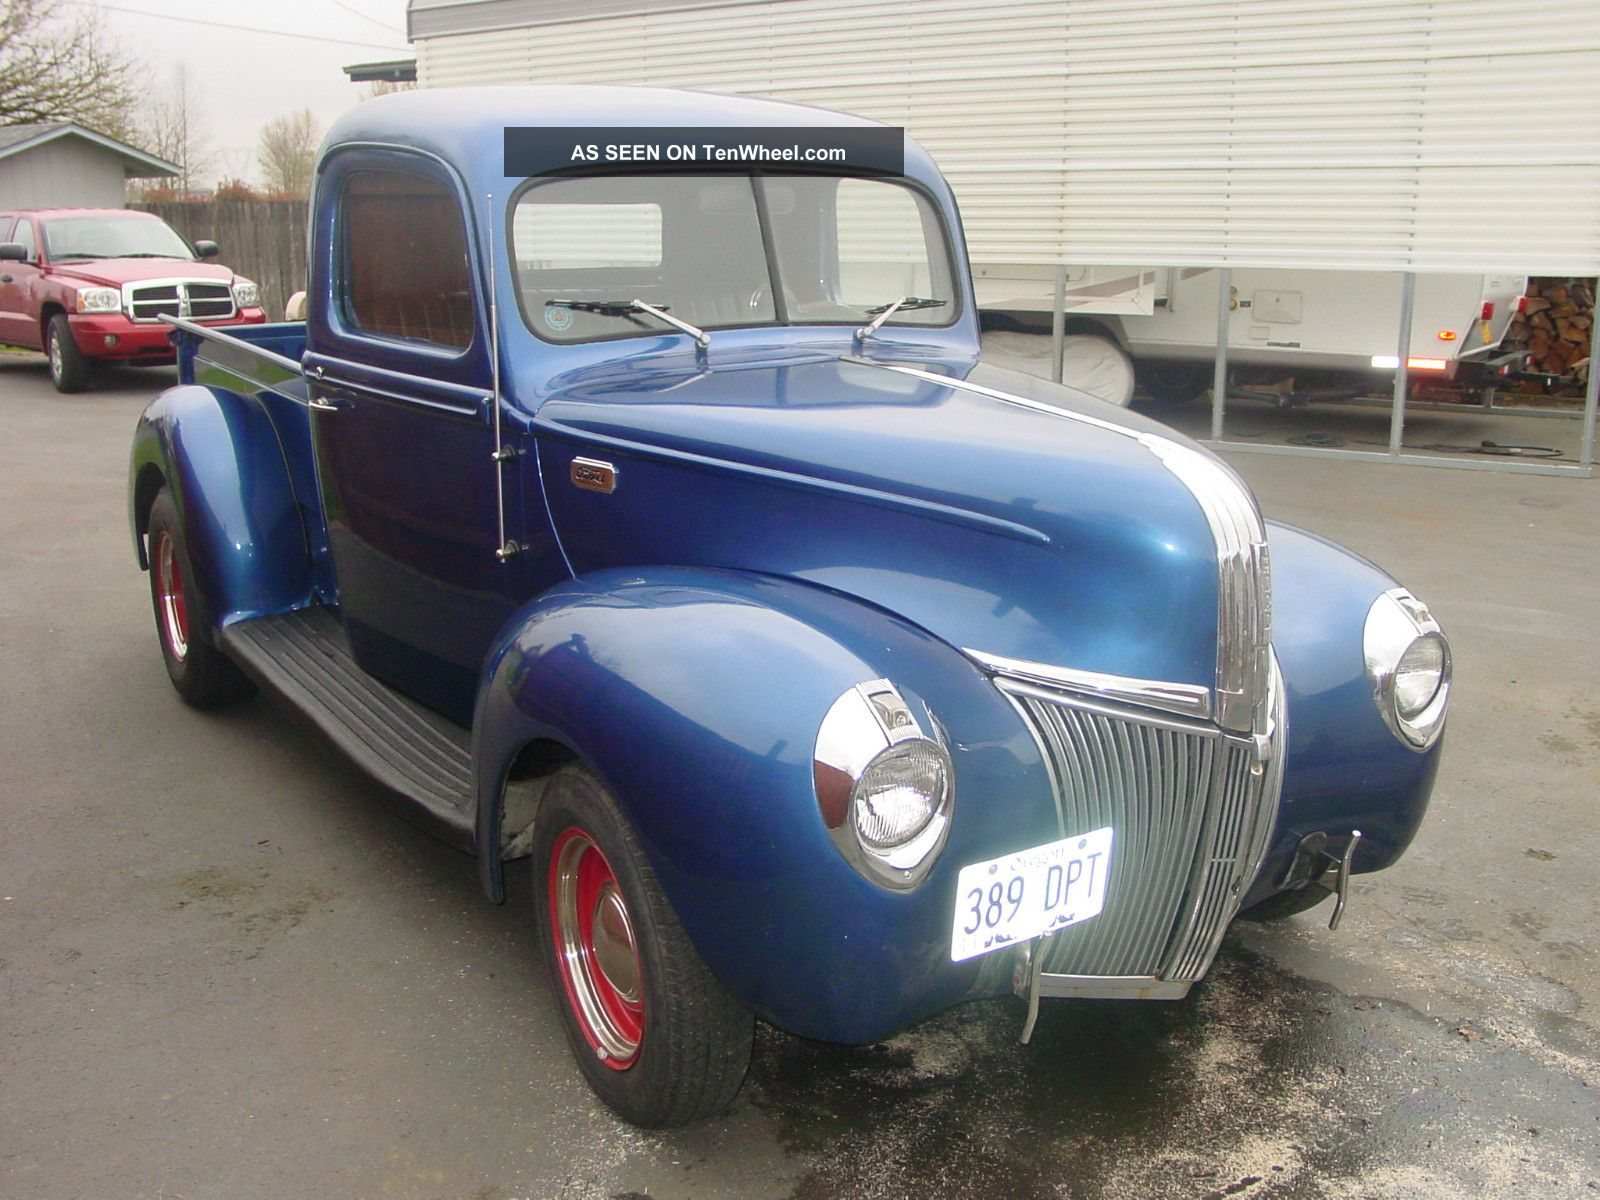 1941 Ford Pickup Hot Rod 350 Chevy With Tri Power Truck Other Pickups Photo 6